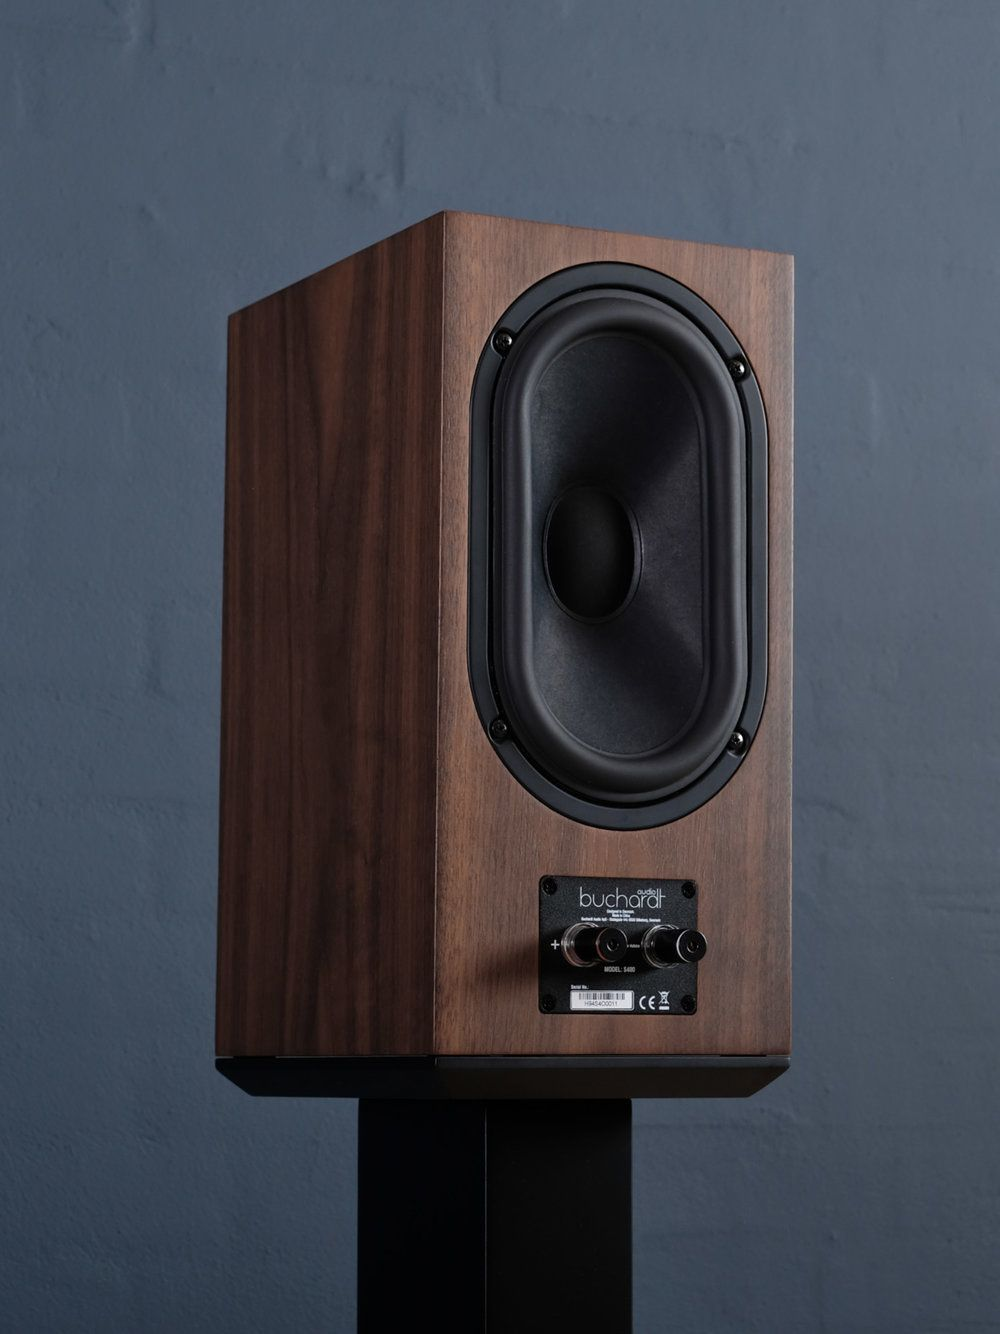 S400 Smoked Oak Buchardt Audio Audio Design Audio Speaker Design